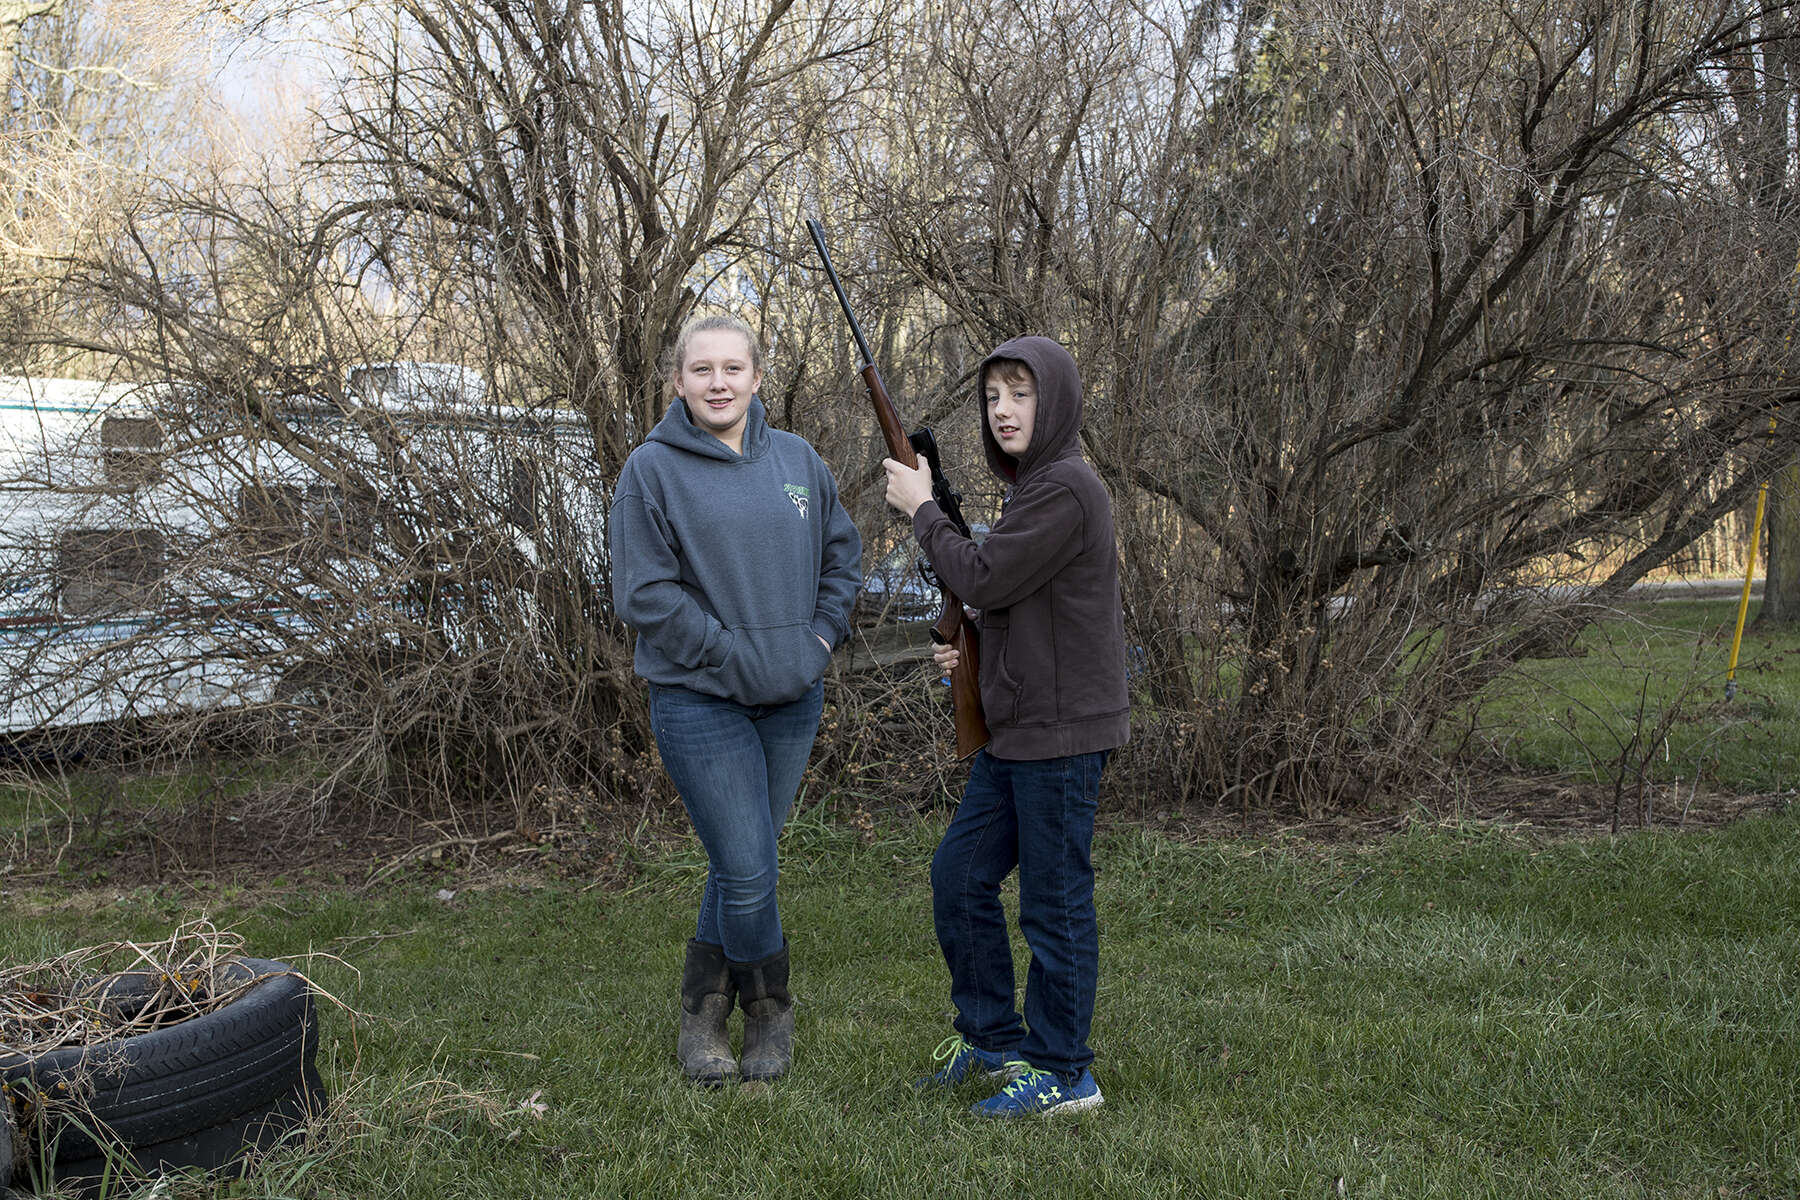 Meredith Cole, age 13, and Ethan Cole, age 11, wait for their father to set up a target in the backyard at their family's dairy farm to practice shooting on the day before the opening of deer rifle hunting season in Troy, Penn., on Sunday, November 26, 2017. Meredith is over the age of 12 and has passed a hunter safety course and is therefore allowed to hunt while carrying her own gun as long as she is in the presence of a licensed adult. Ethan is enrolled in the Mentored Youth Hunting Permit program and can hunt with a licensed adult mentor, but the gun must be carried by the adult and only one gun may be used between the pair.